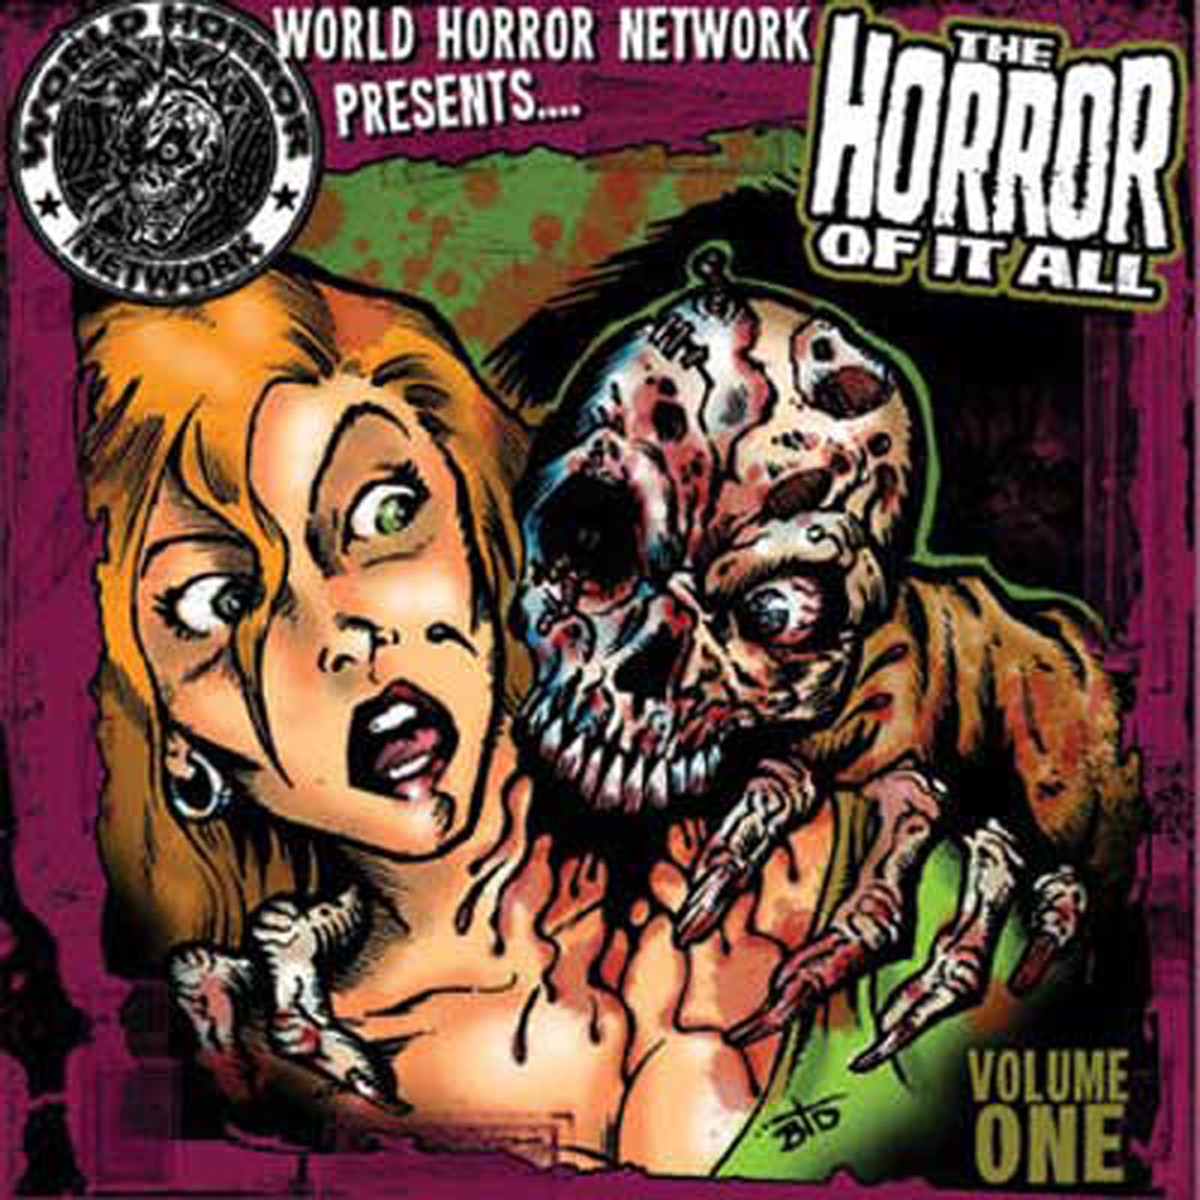 The Horror Of It All Vol 1 Various Artists CD cover